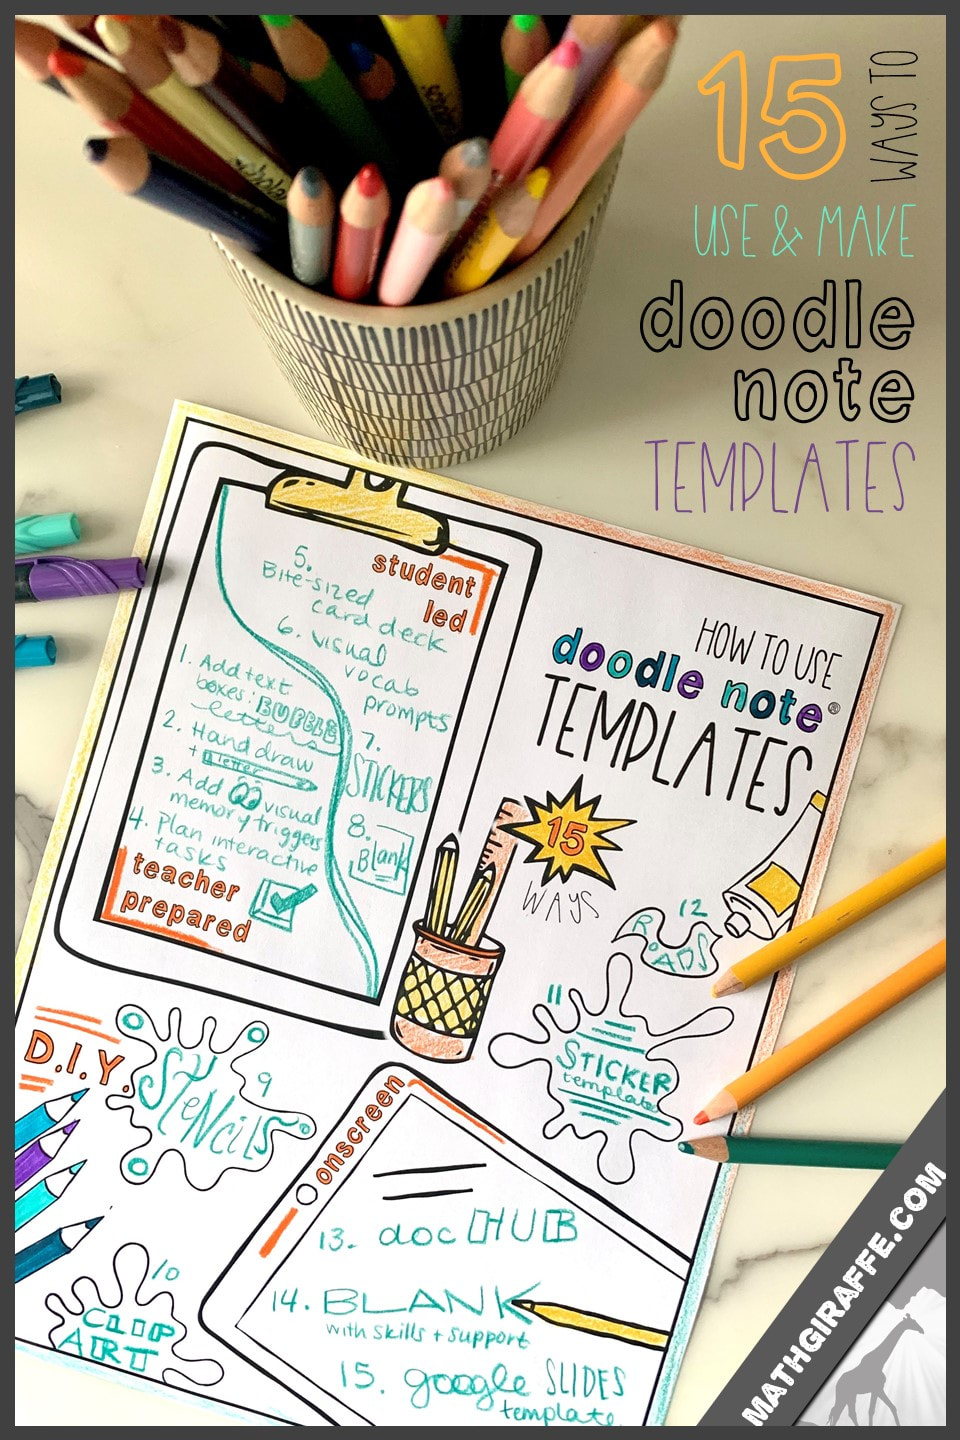 How to Use and Make Doodle Note Templates - D.I.Y. Doodle Notes